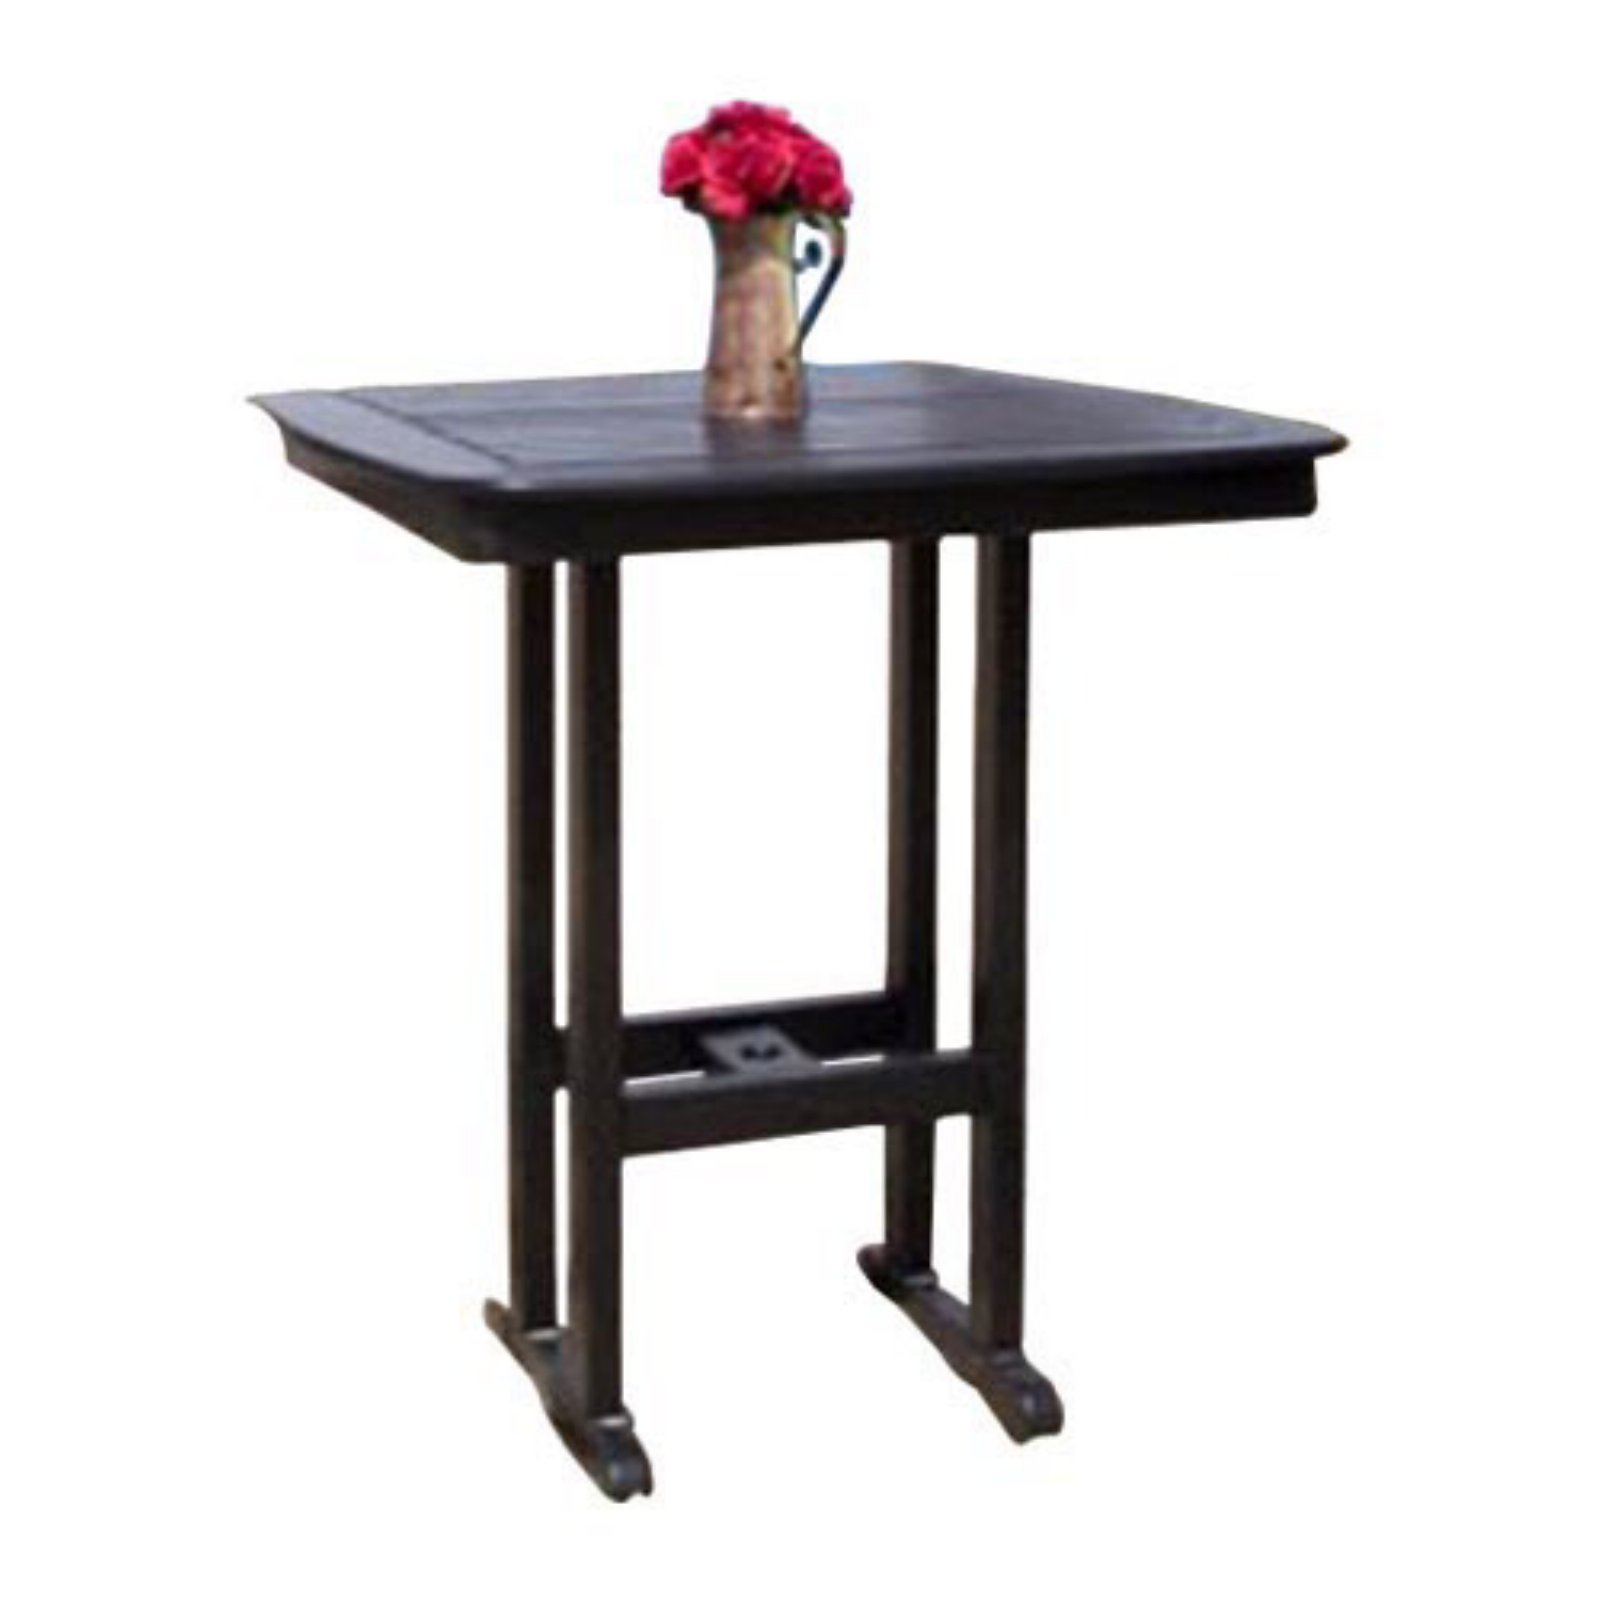 POLYWOOD® Nautical 36 x 36 in. Recycled Plastic Bar Table